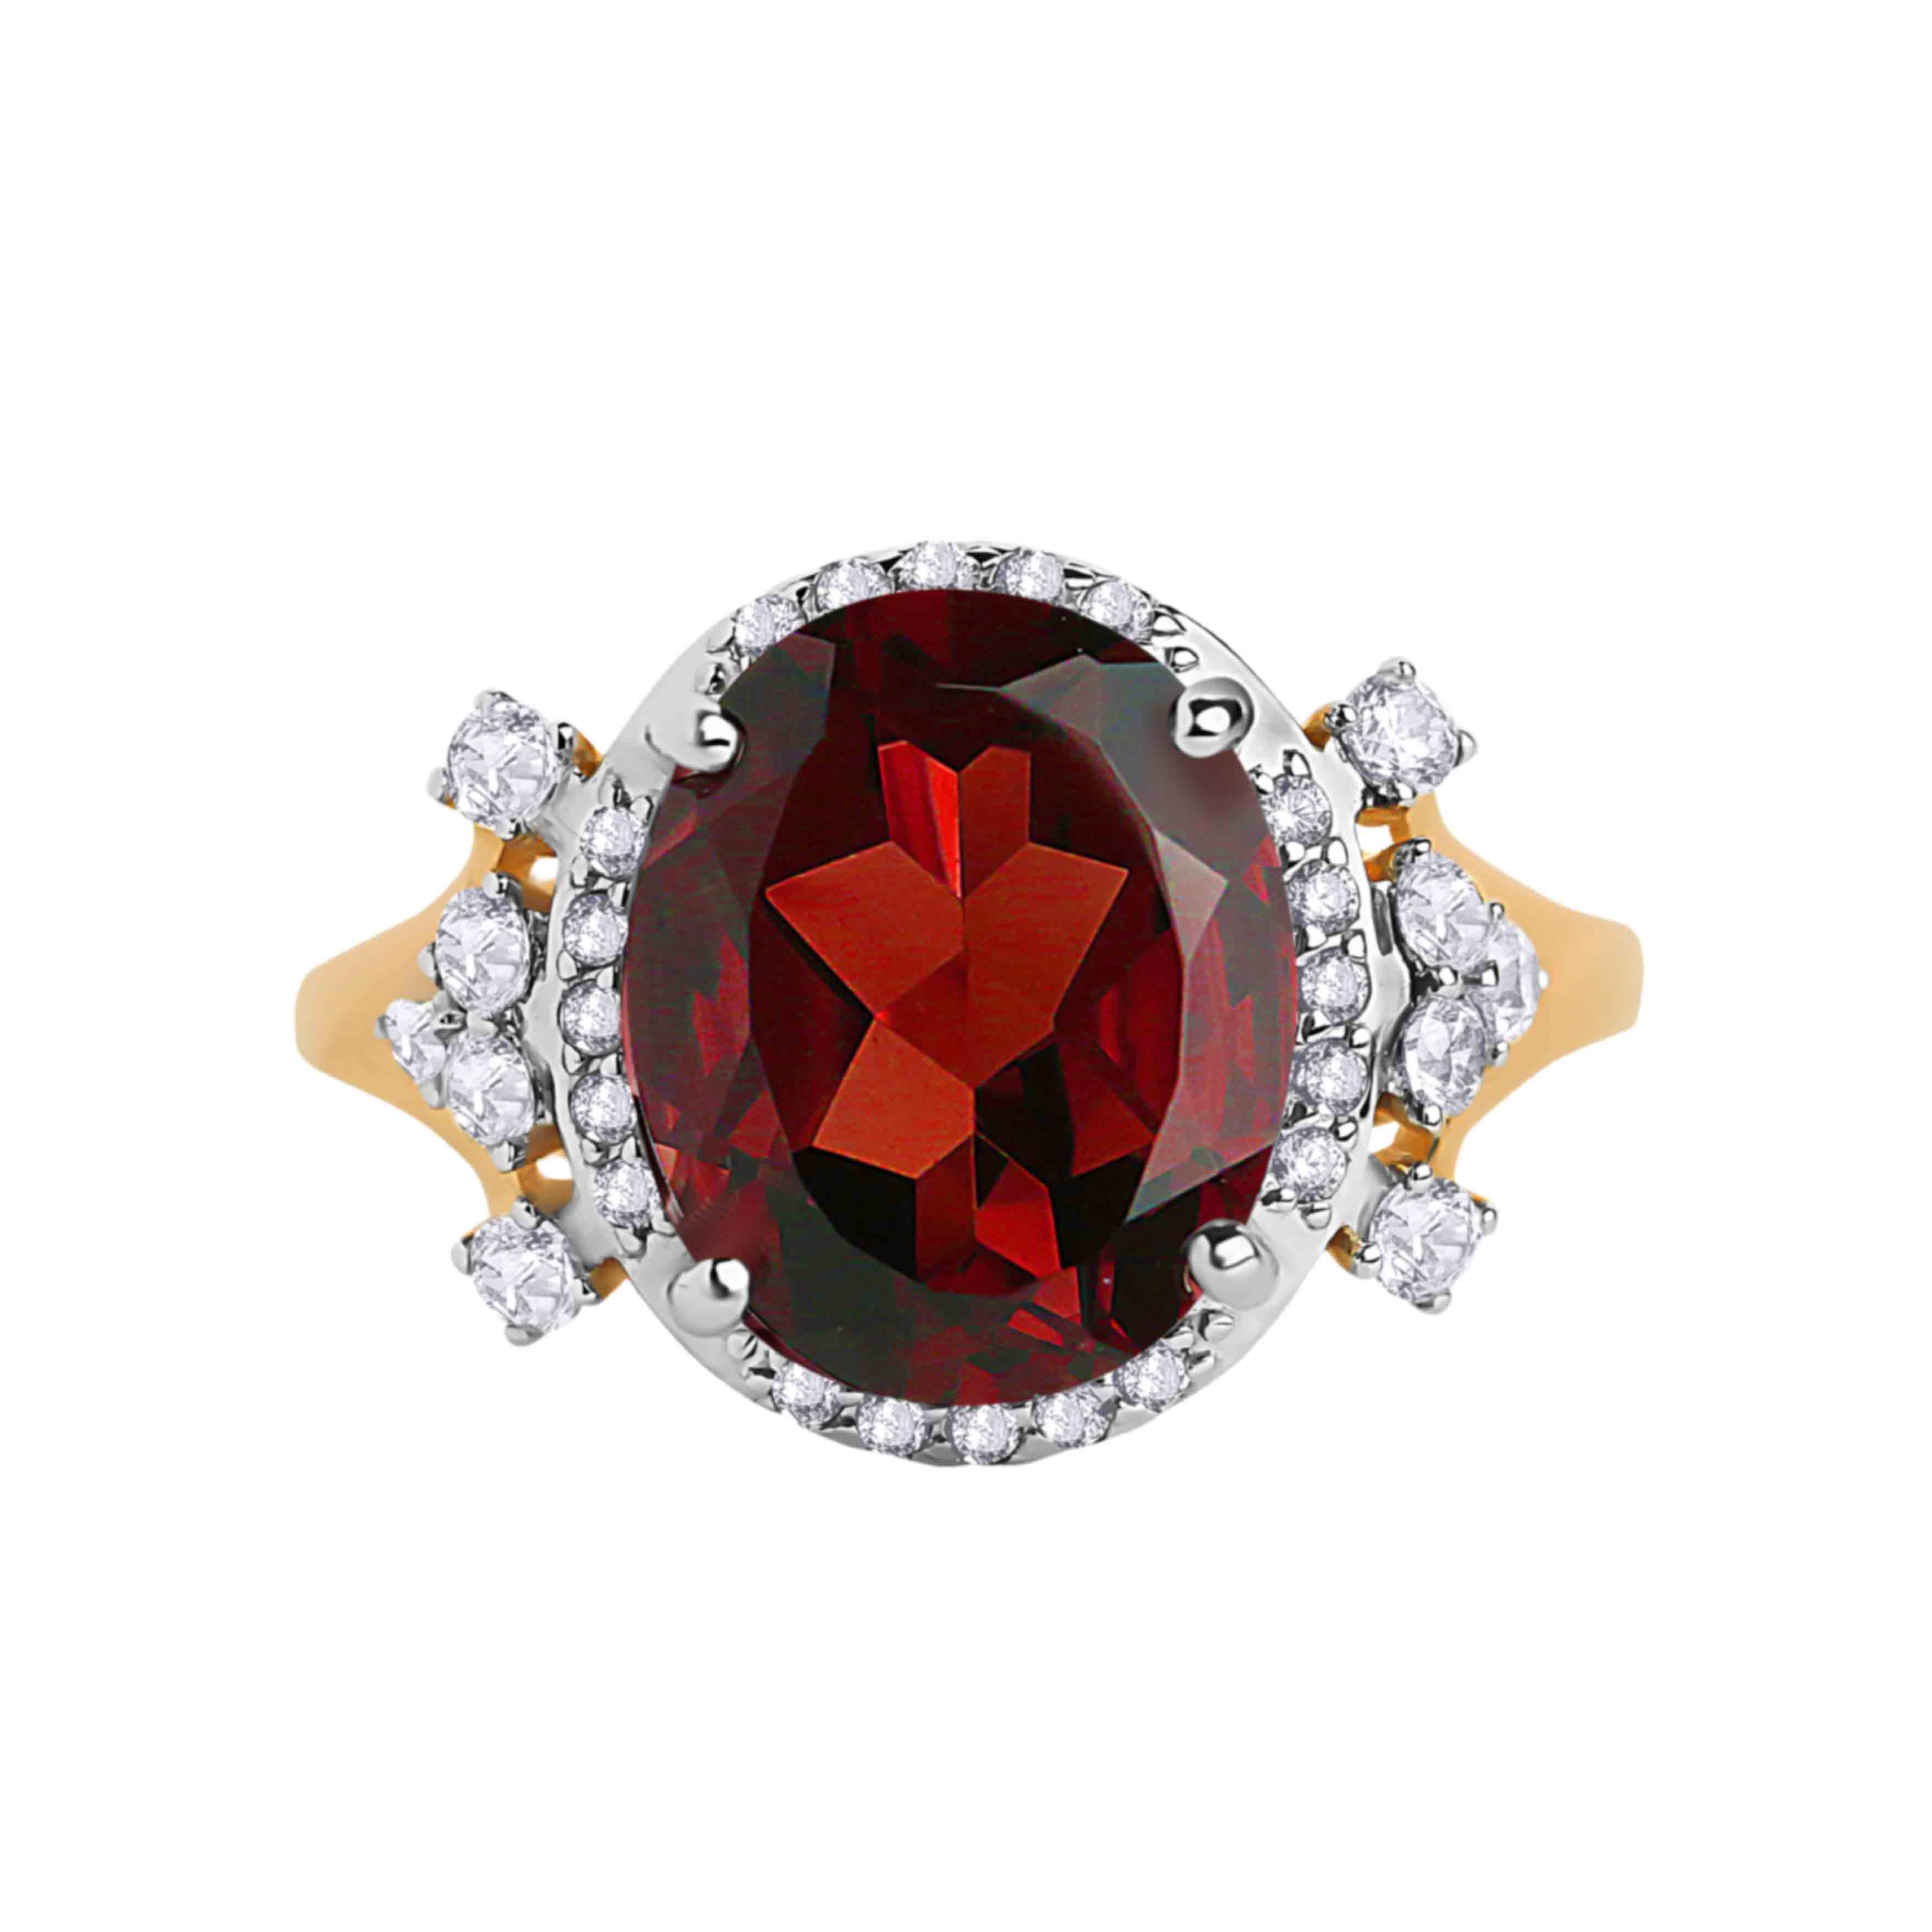 Oval-shaped Garnet and CZ Rose Gold Cocktail Ring. View 2